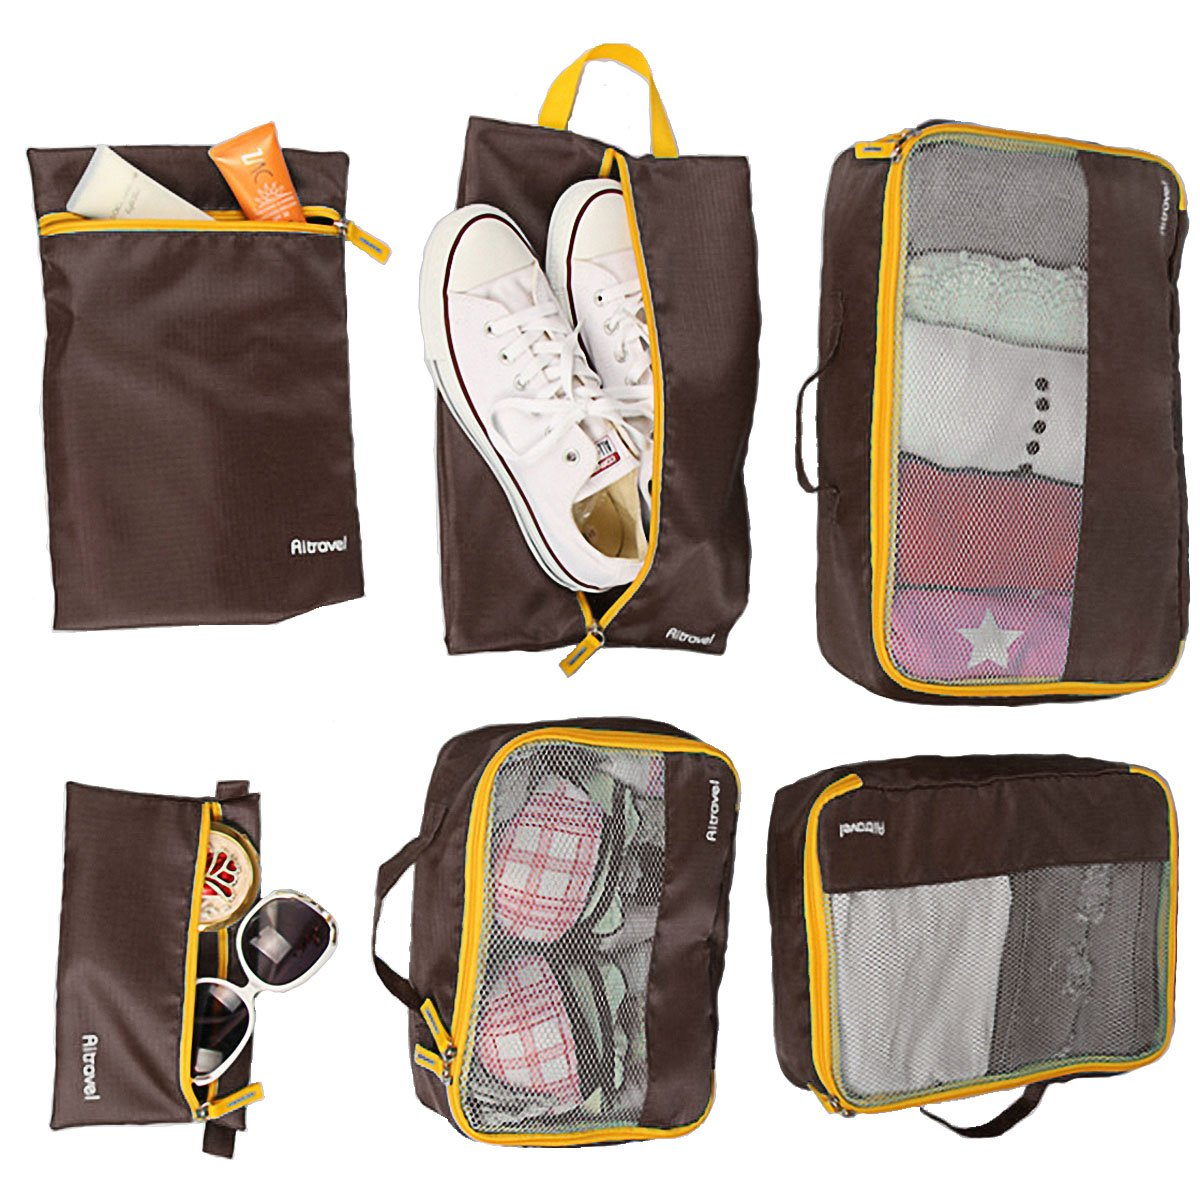 Travel Packing Organizers - Clothes Cubes Shoe Bags Laundry Pouches For Suitcase Luggage, Storage Organizer 6 Set Color Brown